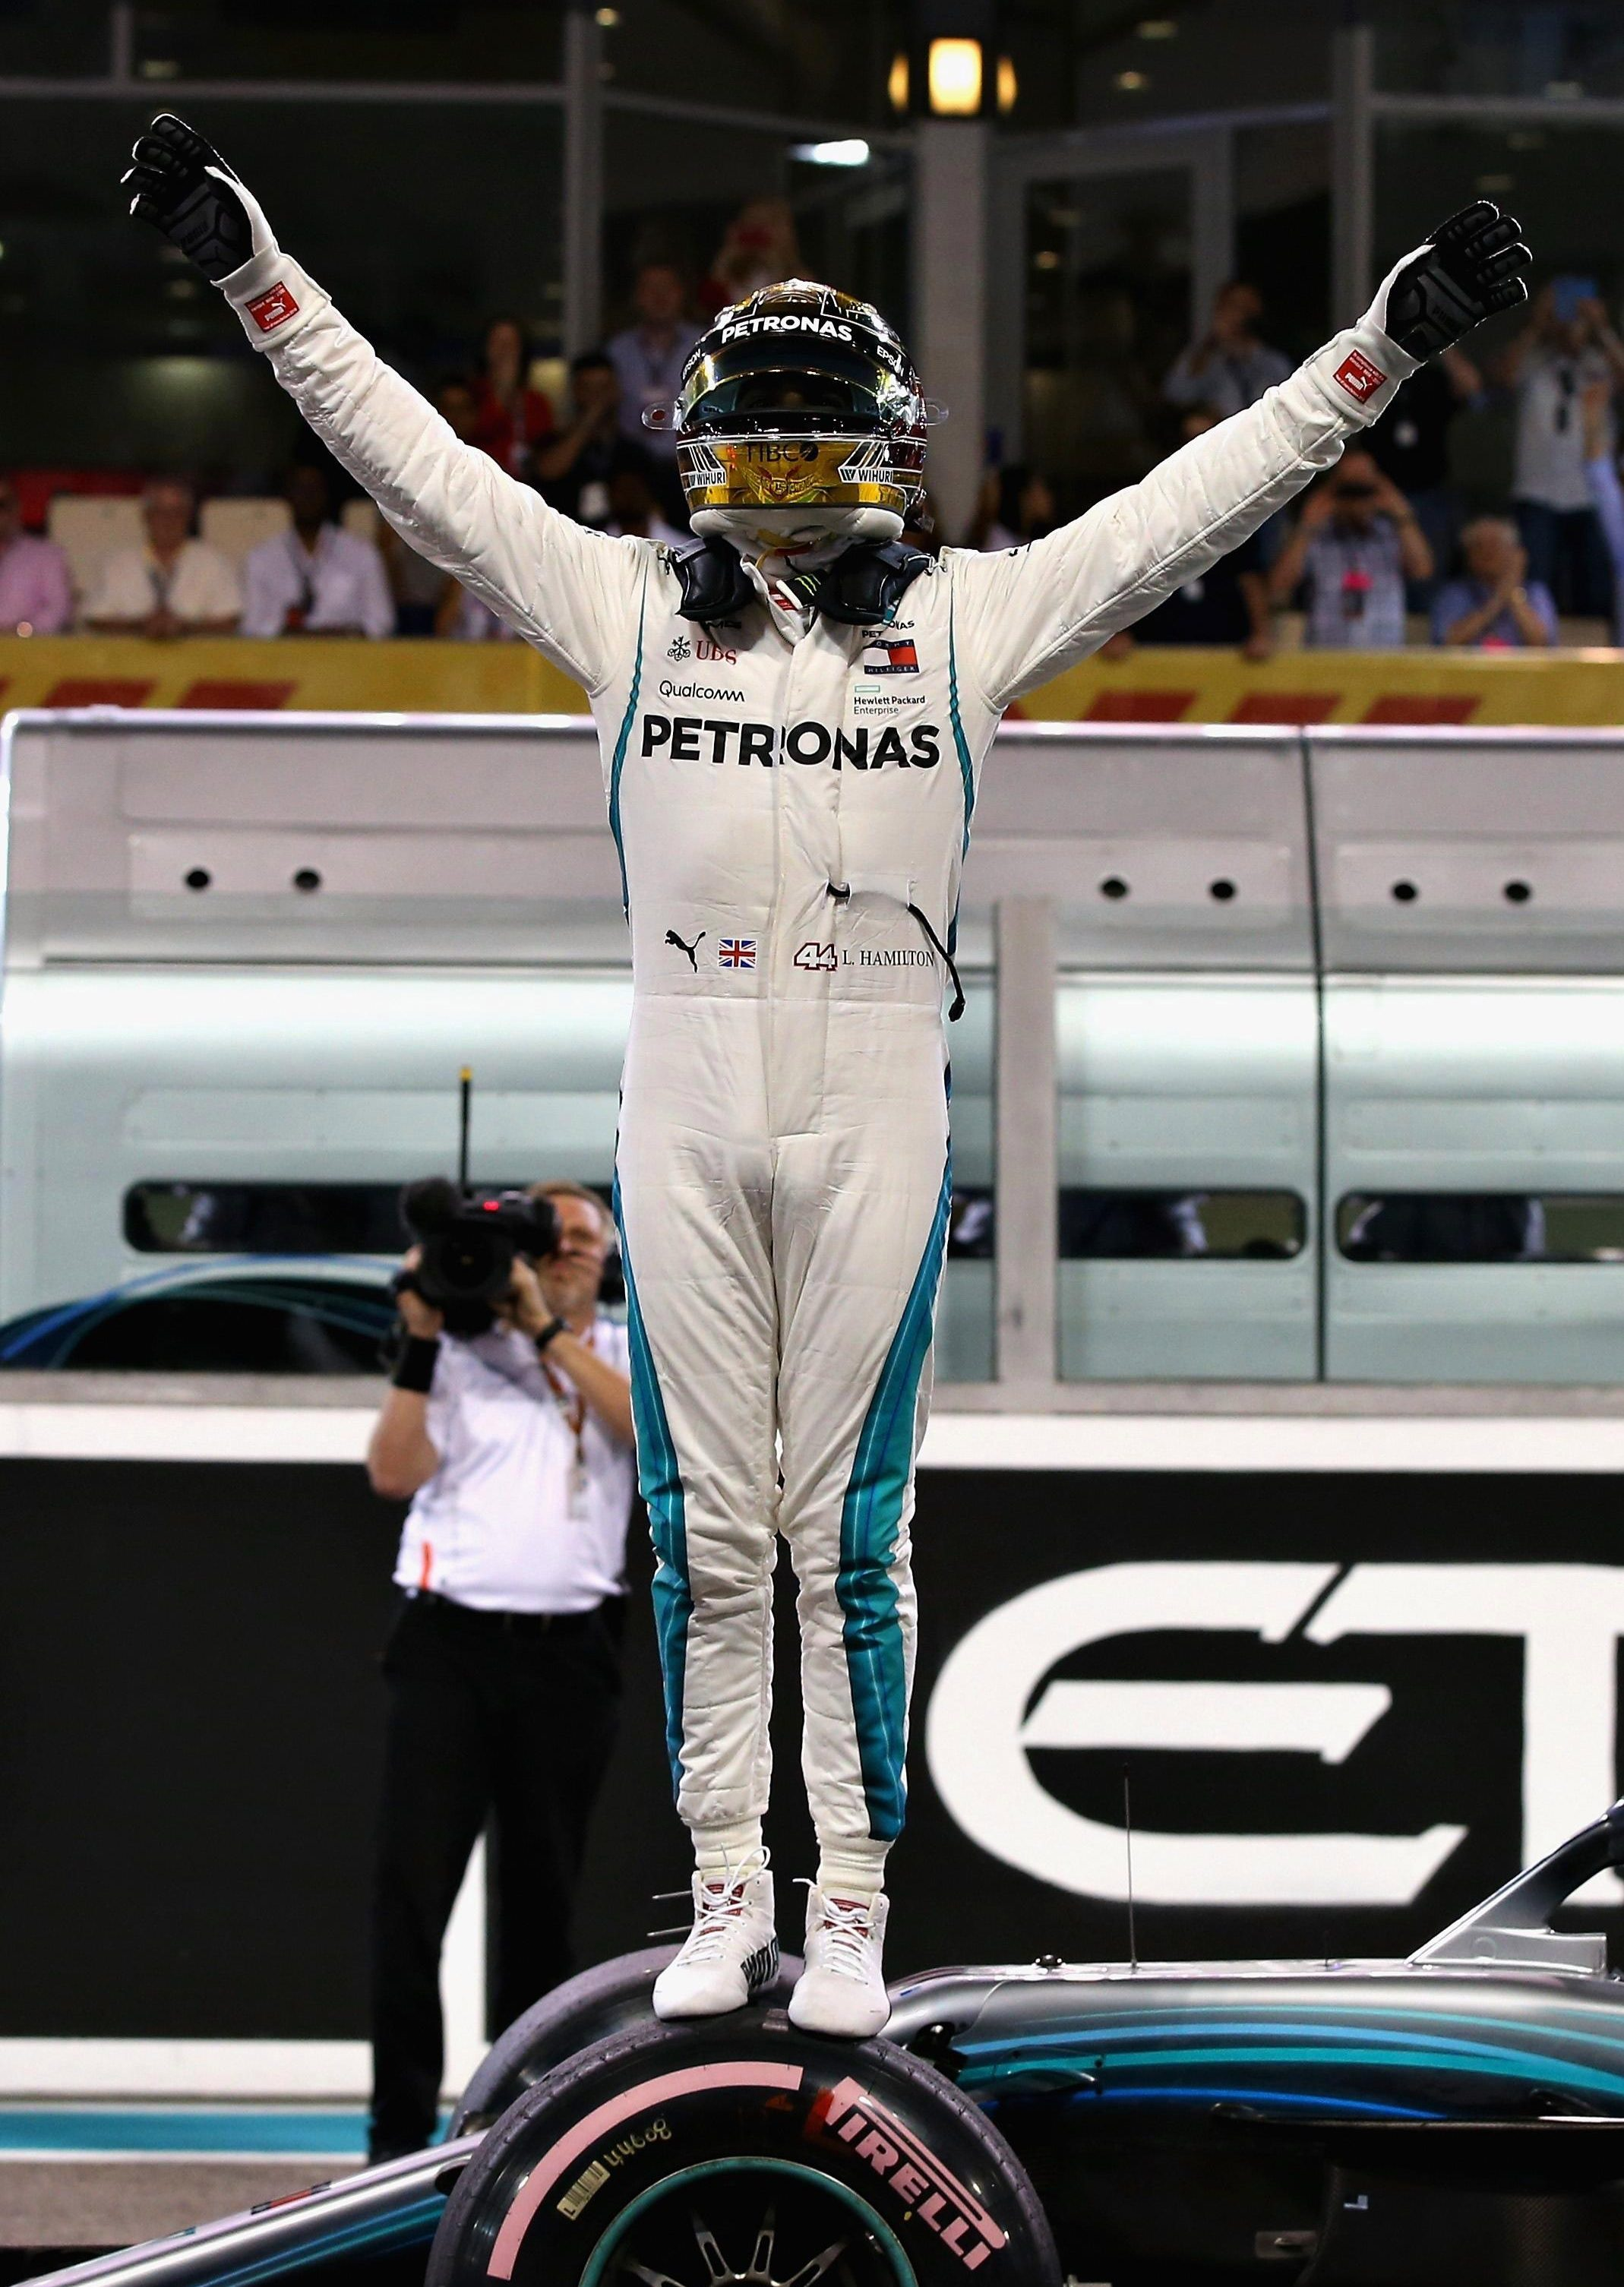 Lewis Hamilton claimed his 11th pole of the season and his 83rd in his career